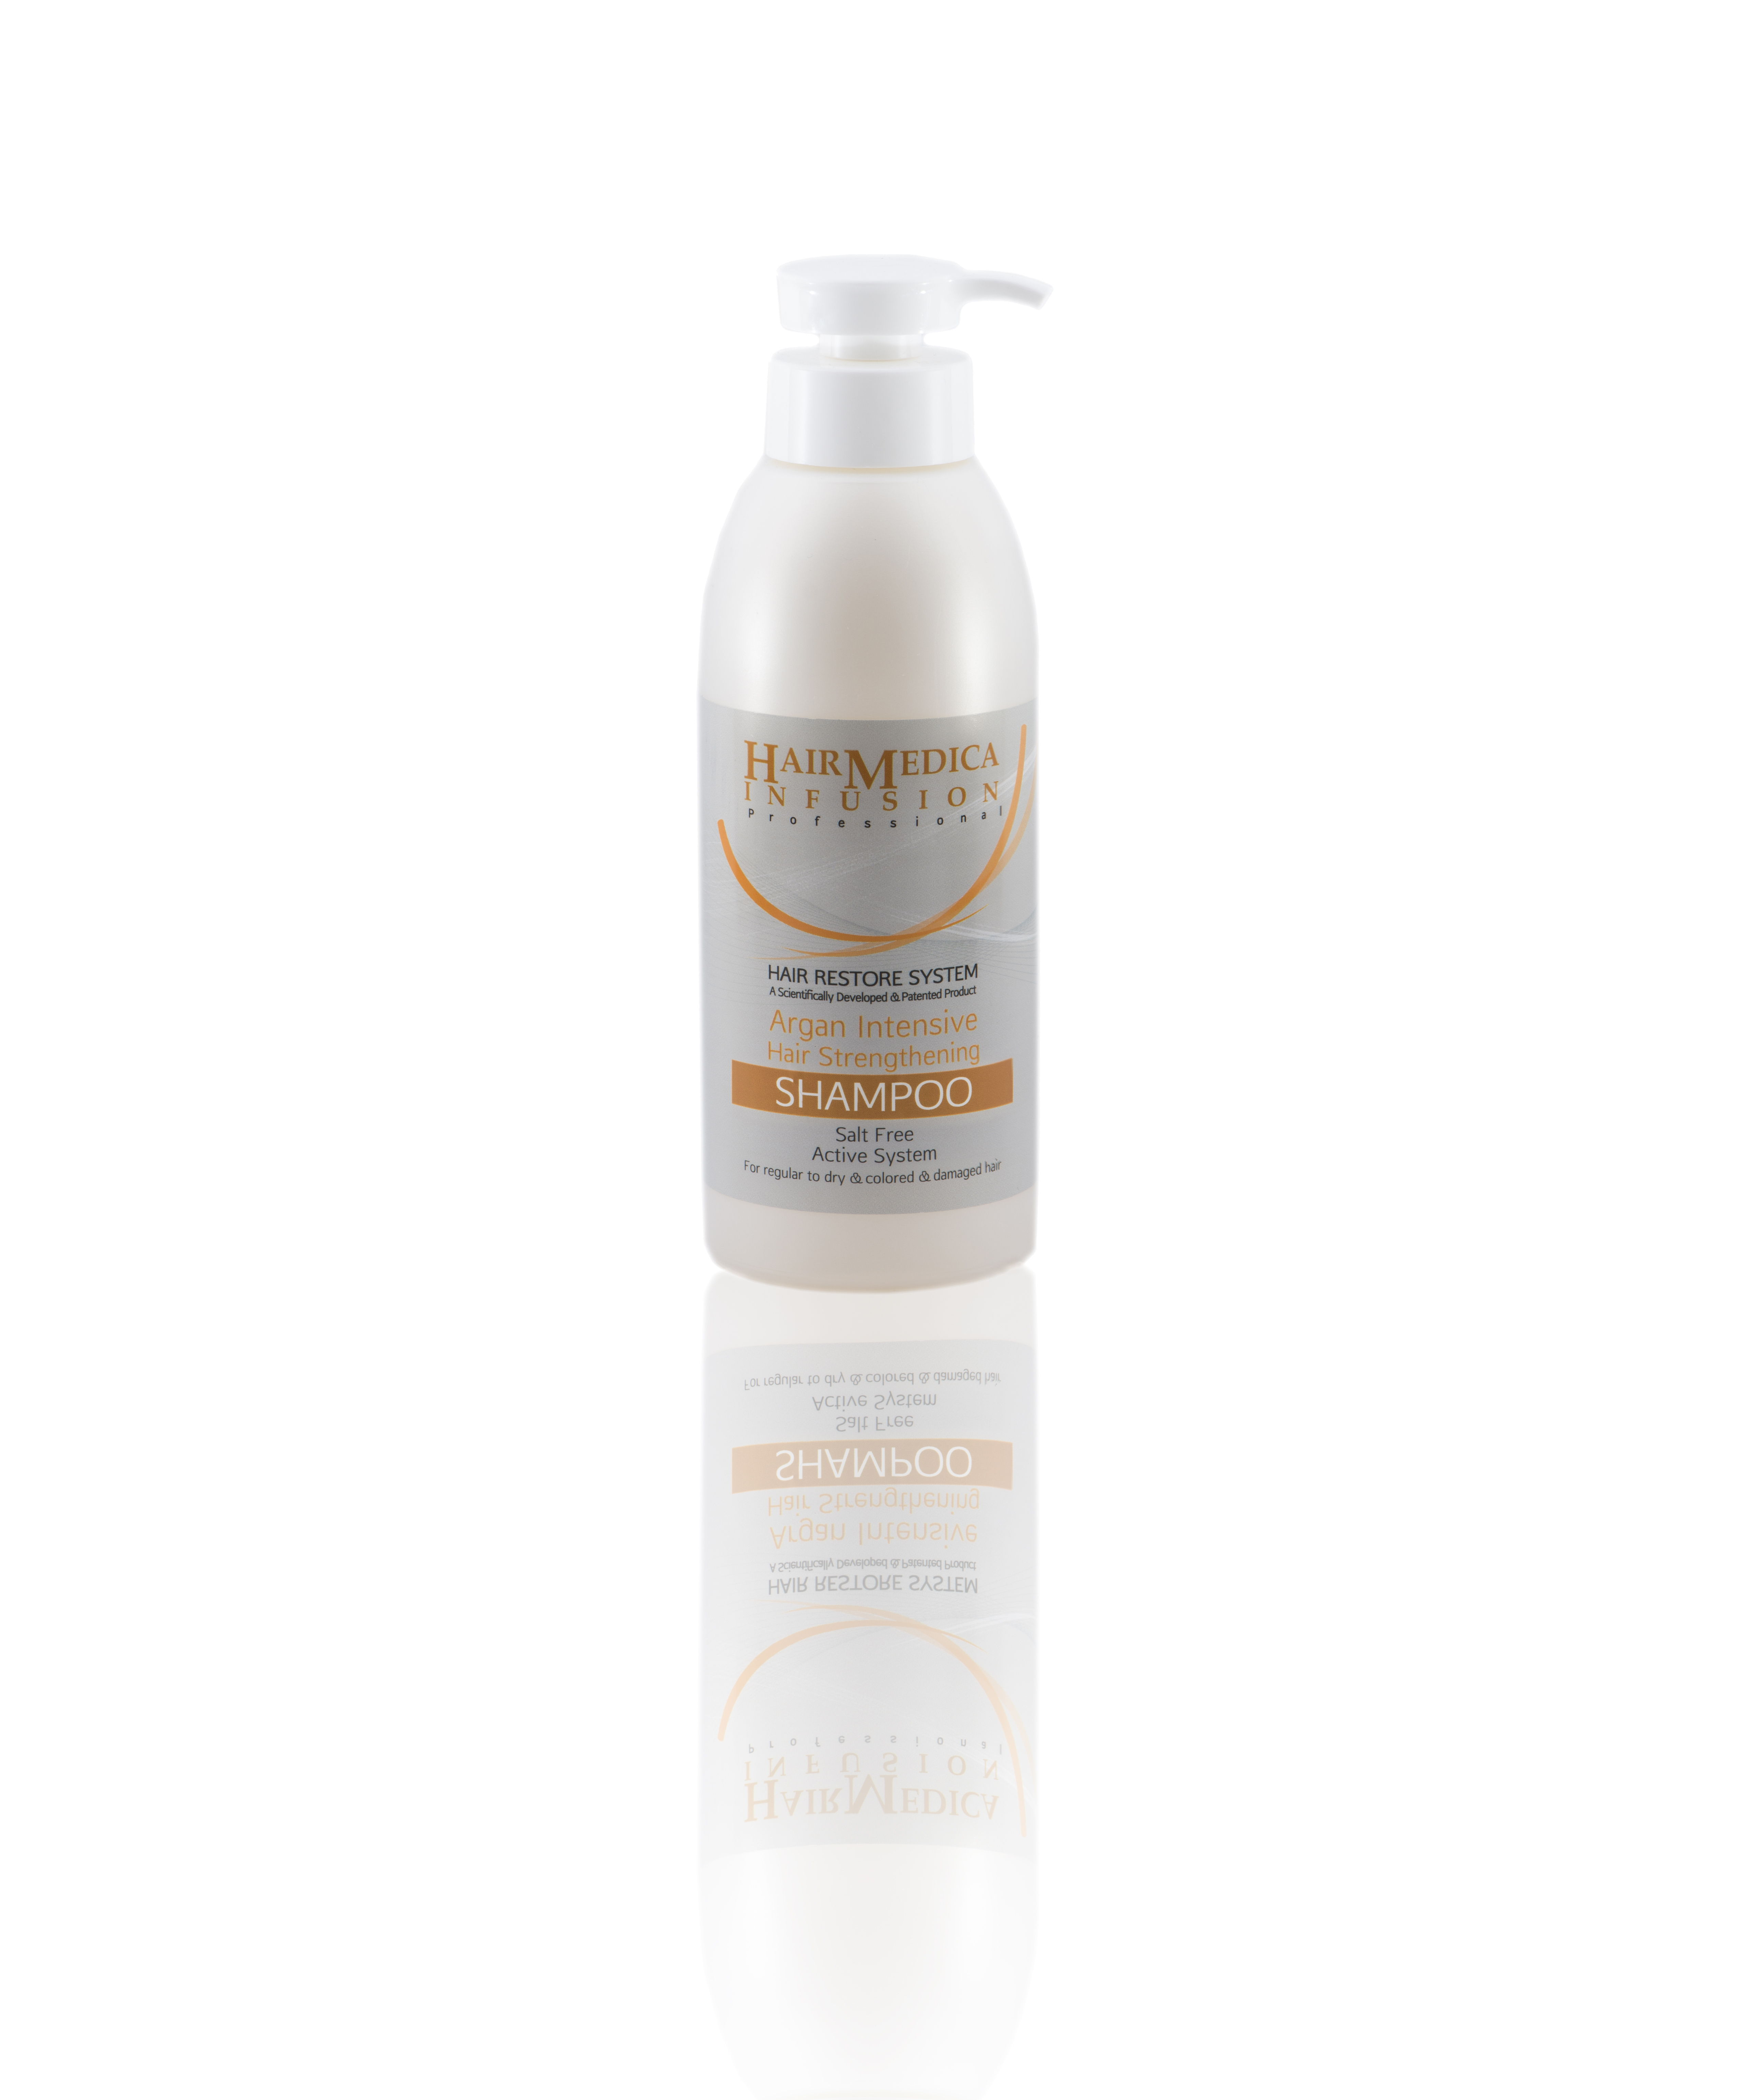 Argan Intensive Root Strengthening Shampoo